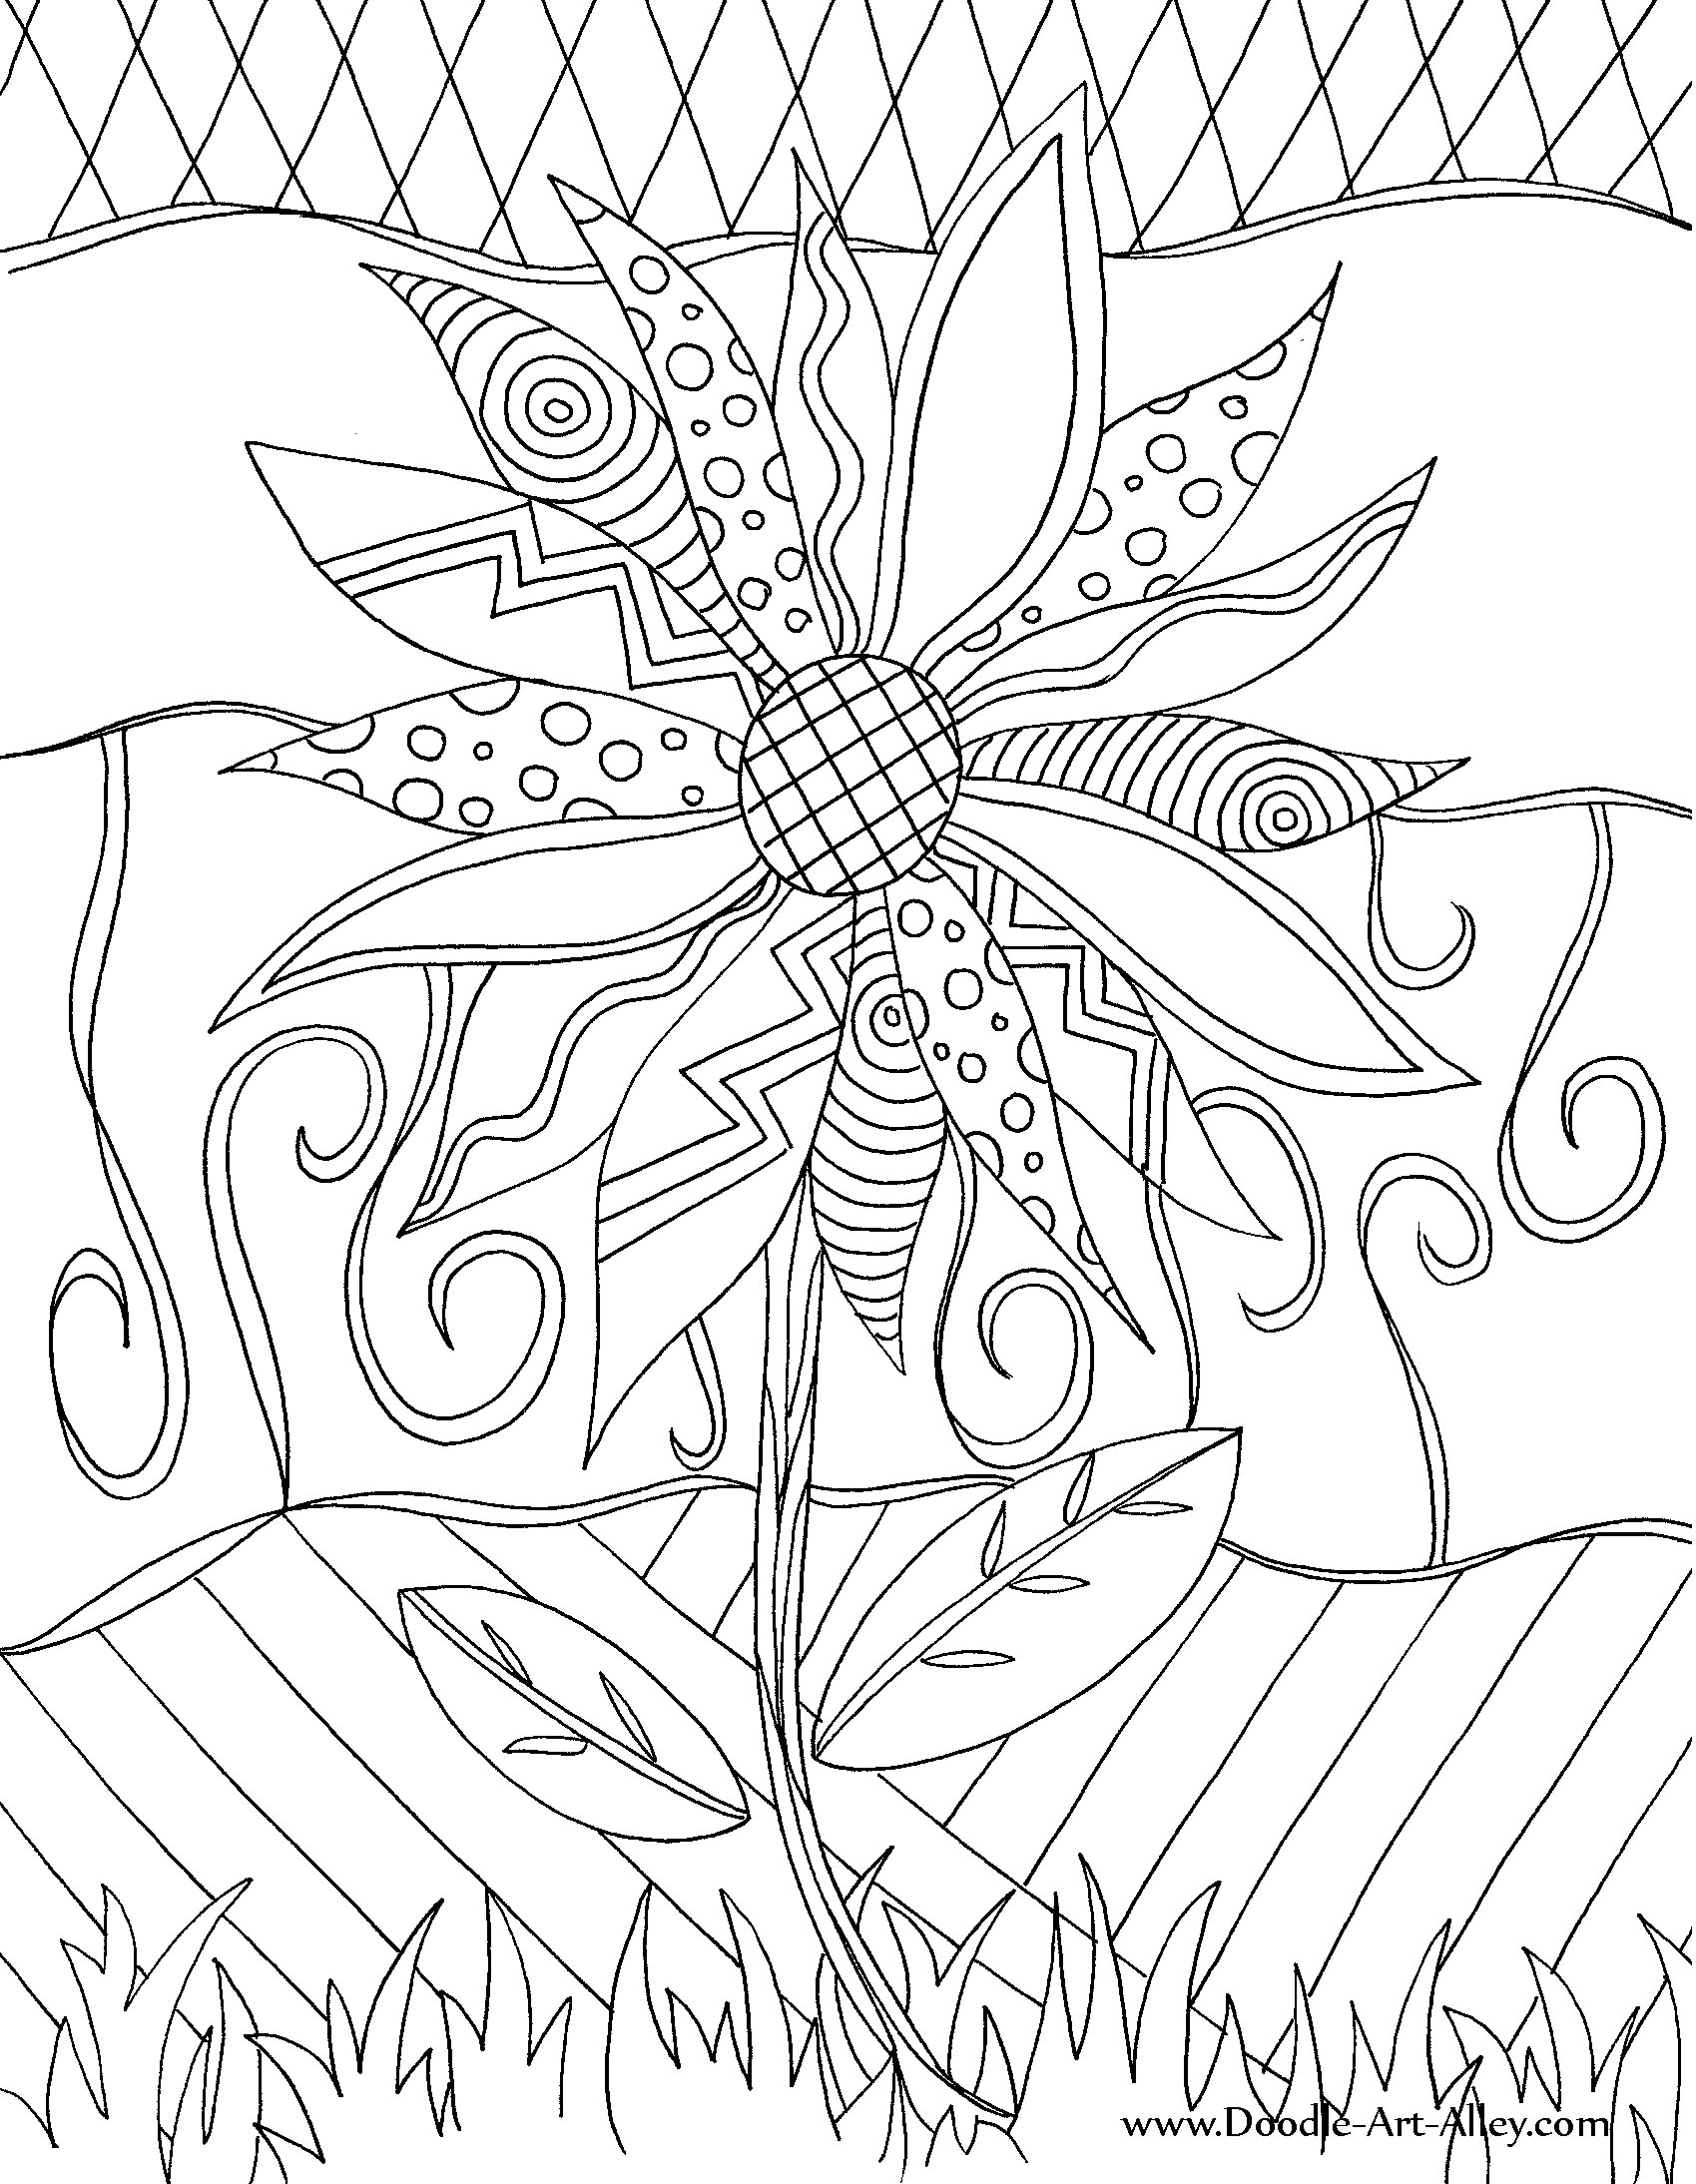 let s doodle coloring pages educational insights coloring pages doodle art alley coloring pages 179675 500x385 gianfreda